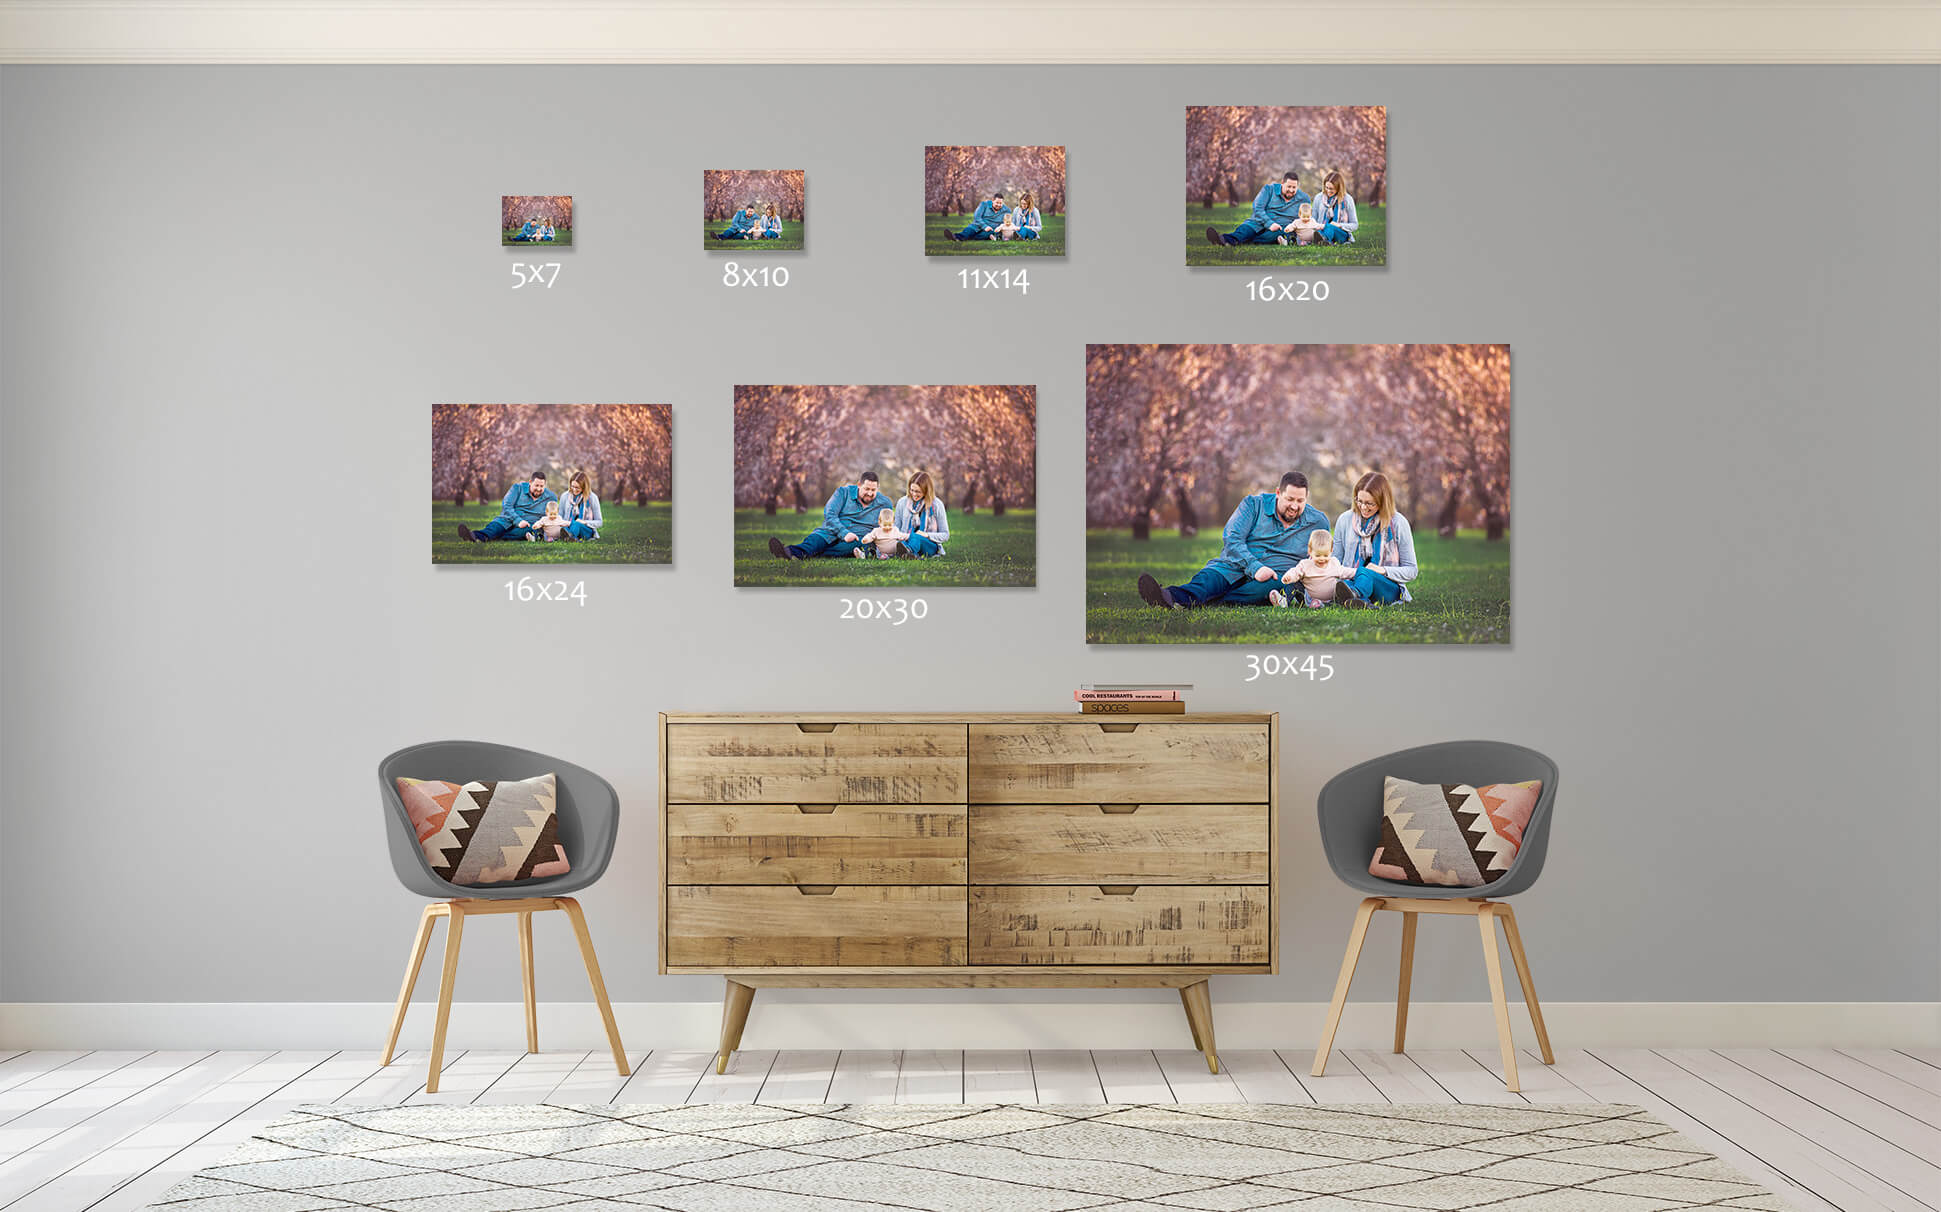 *When you purchase more than one piece of wall art you will receive a 10% discount of the total cost.